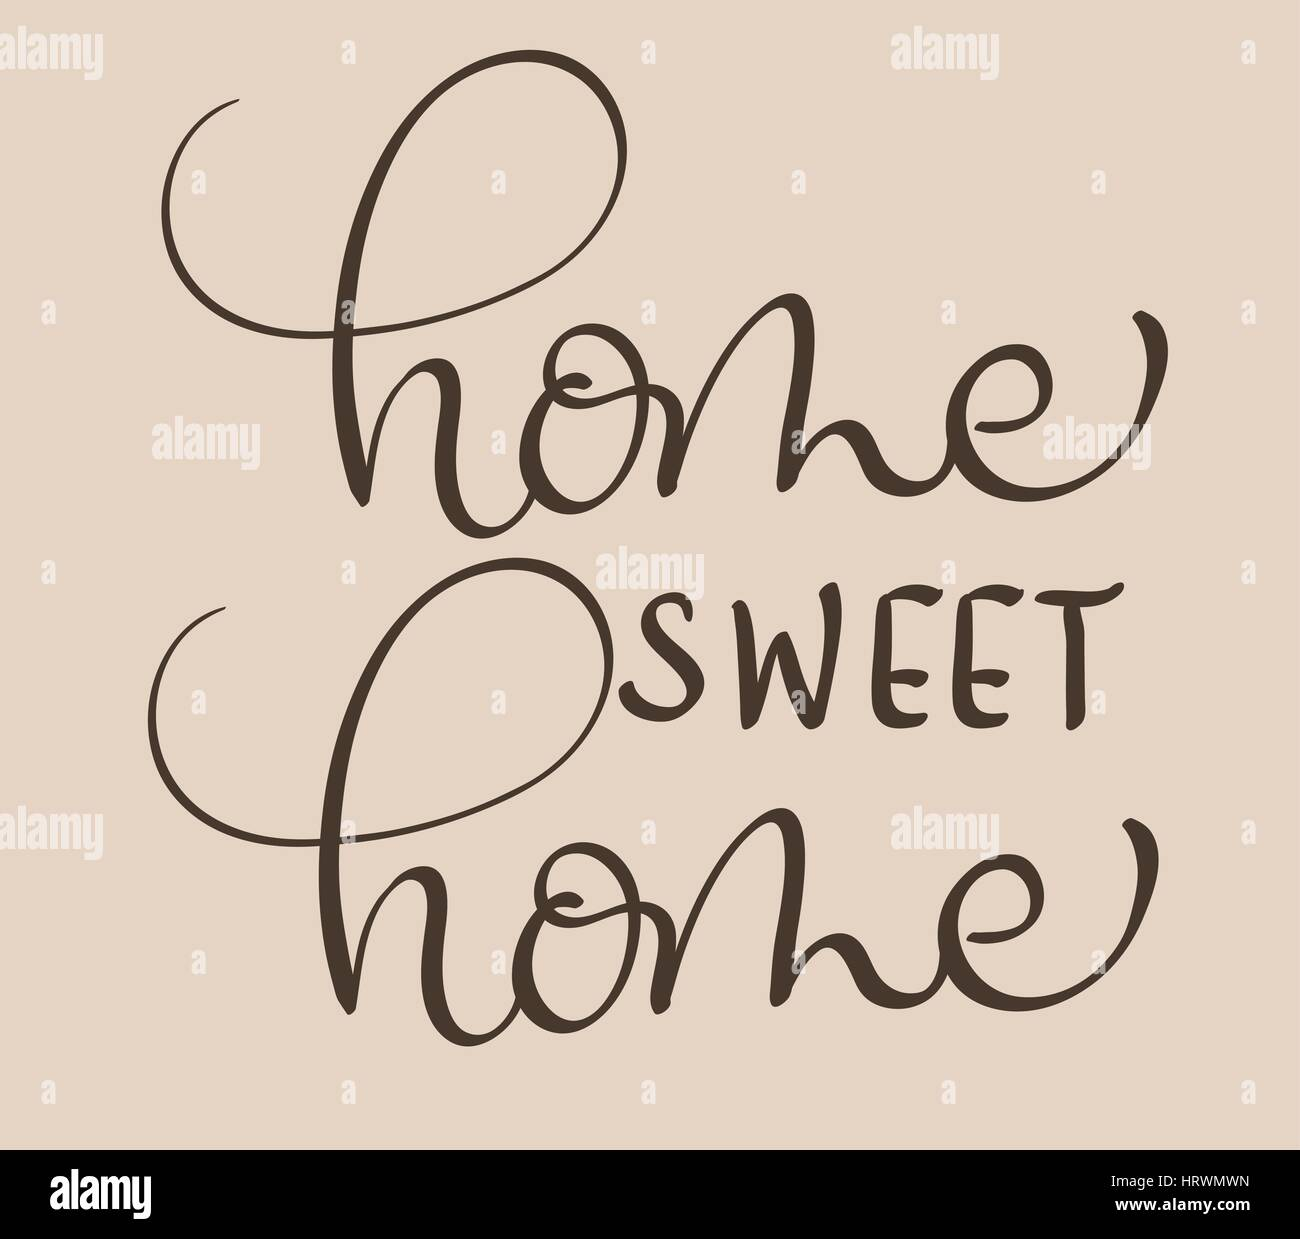 Home sweet home text on beige background. Calligraphy lettering Vector illustration EPS10 - Stock Vector